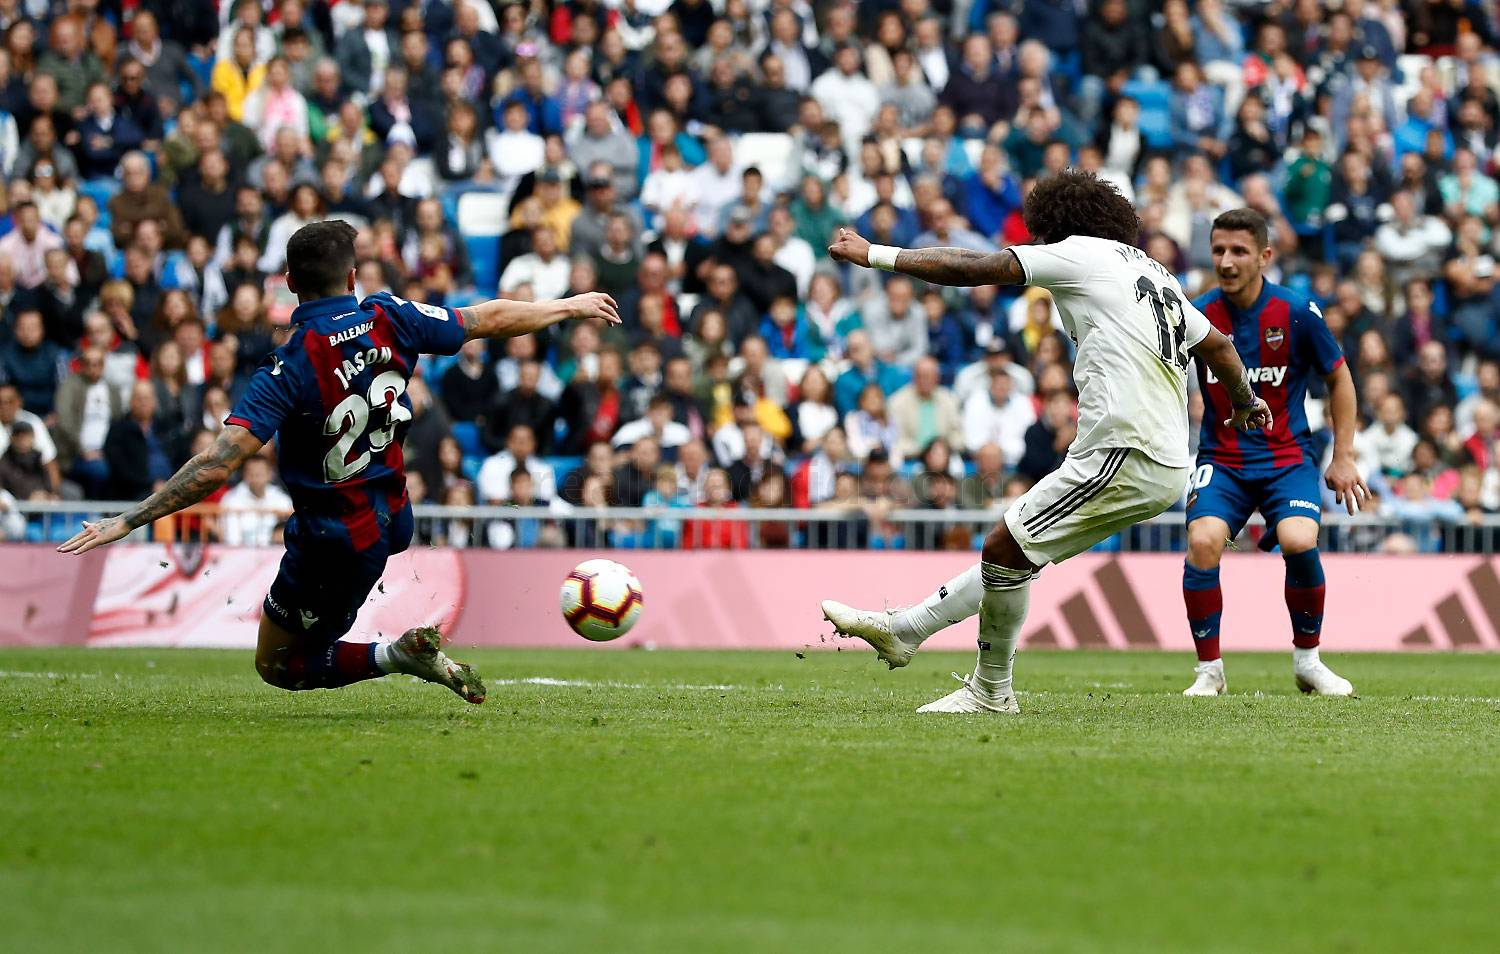 Real Madrid - Real Madrid - Levante - 20-10-2018